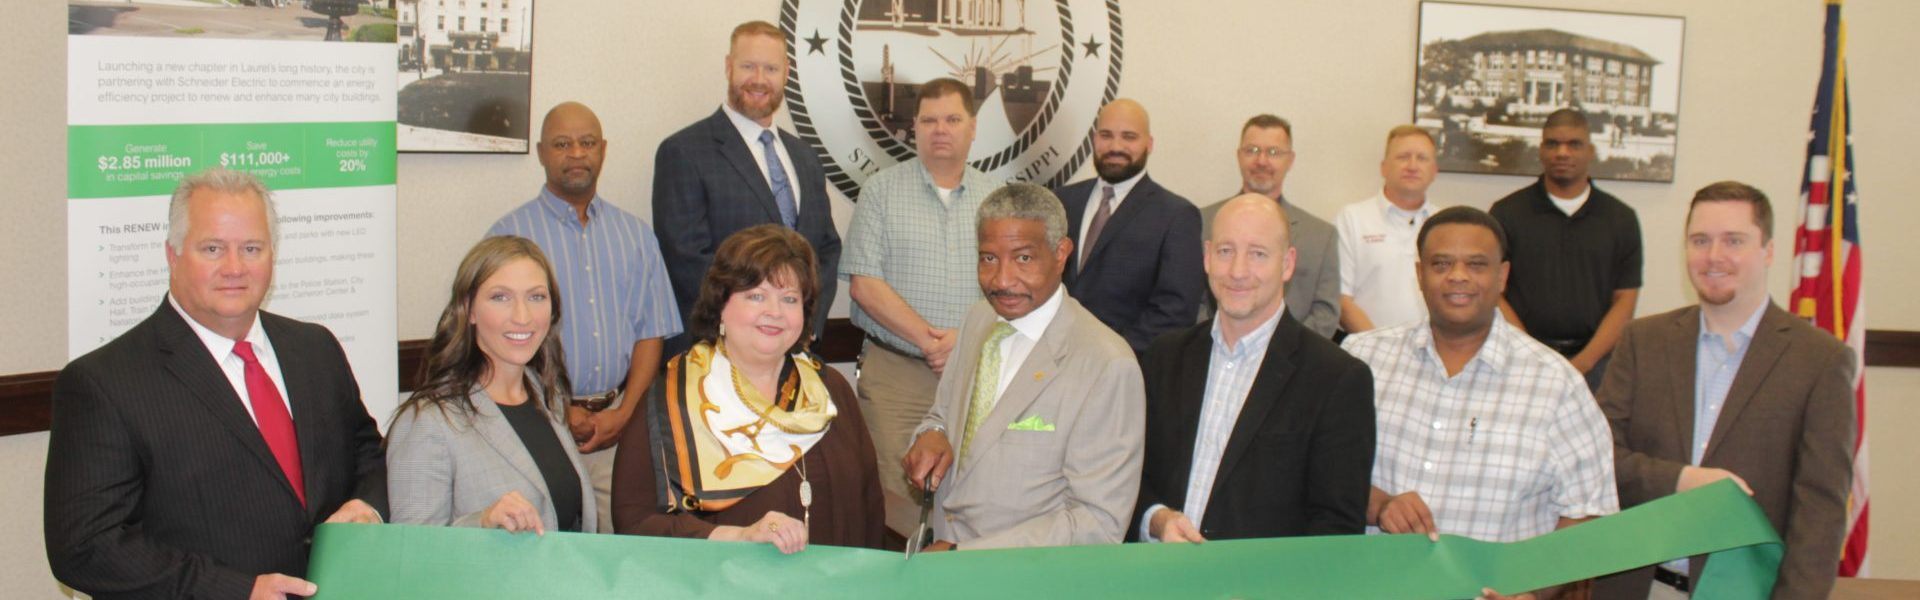 Ribbon cutting for Renew: Laurel Energy Initiatvie